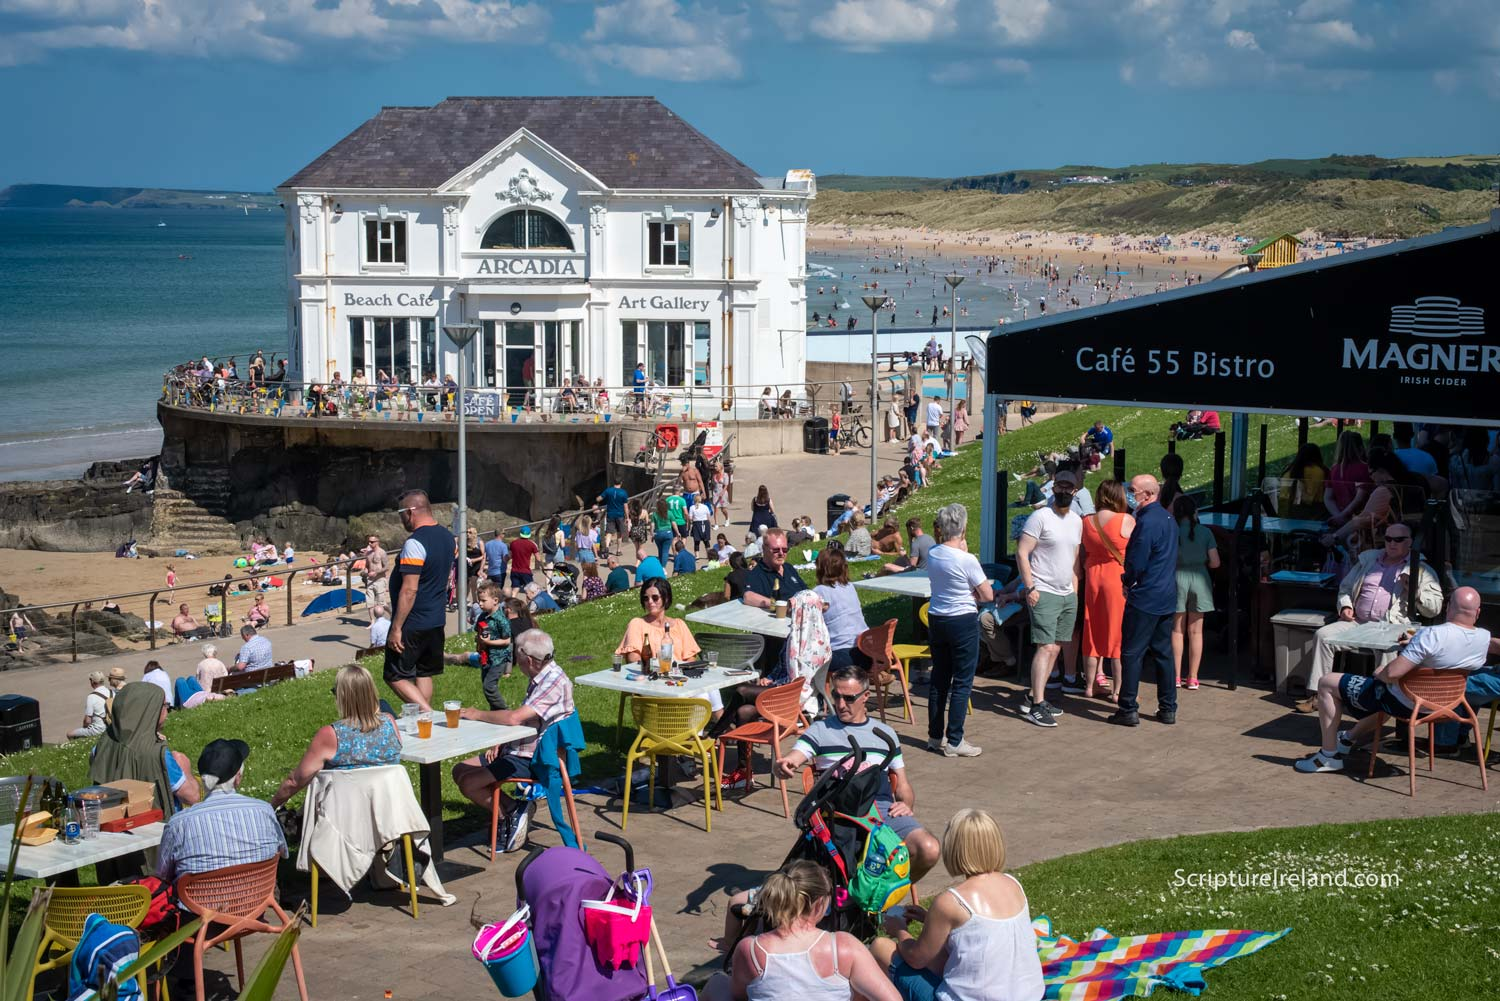 Some will remember the days when The Arcadia was a popular Ballroom. Nowadays it's a popular beach cafe.